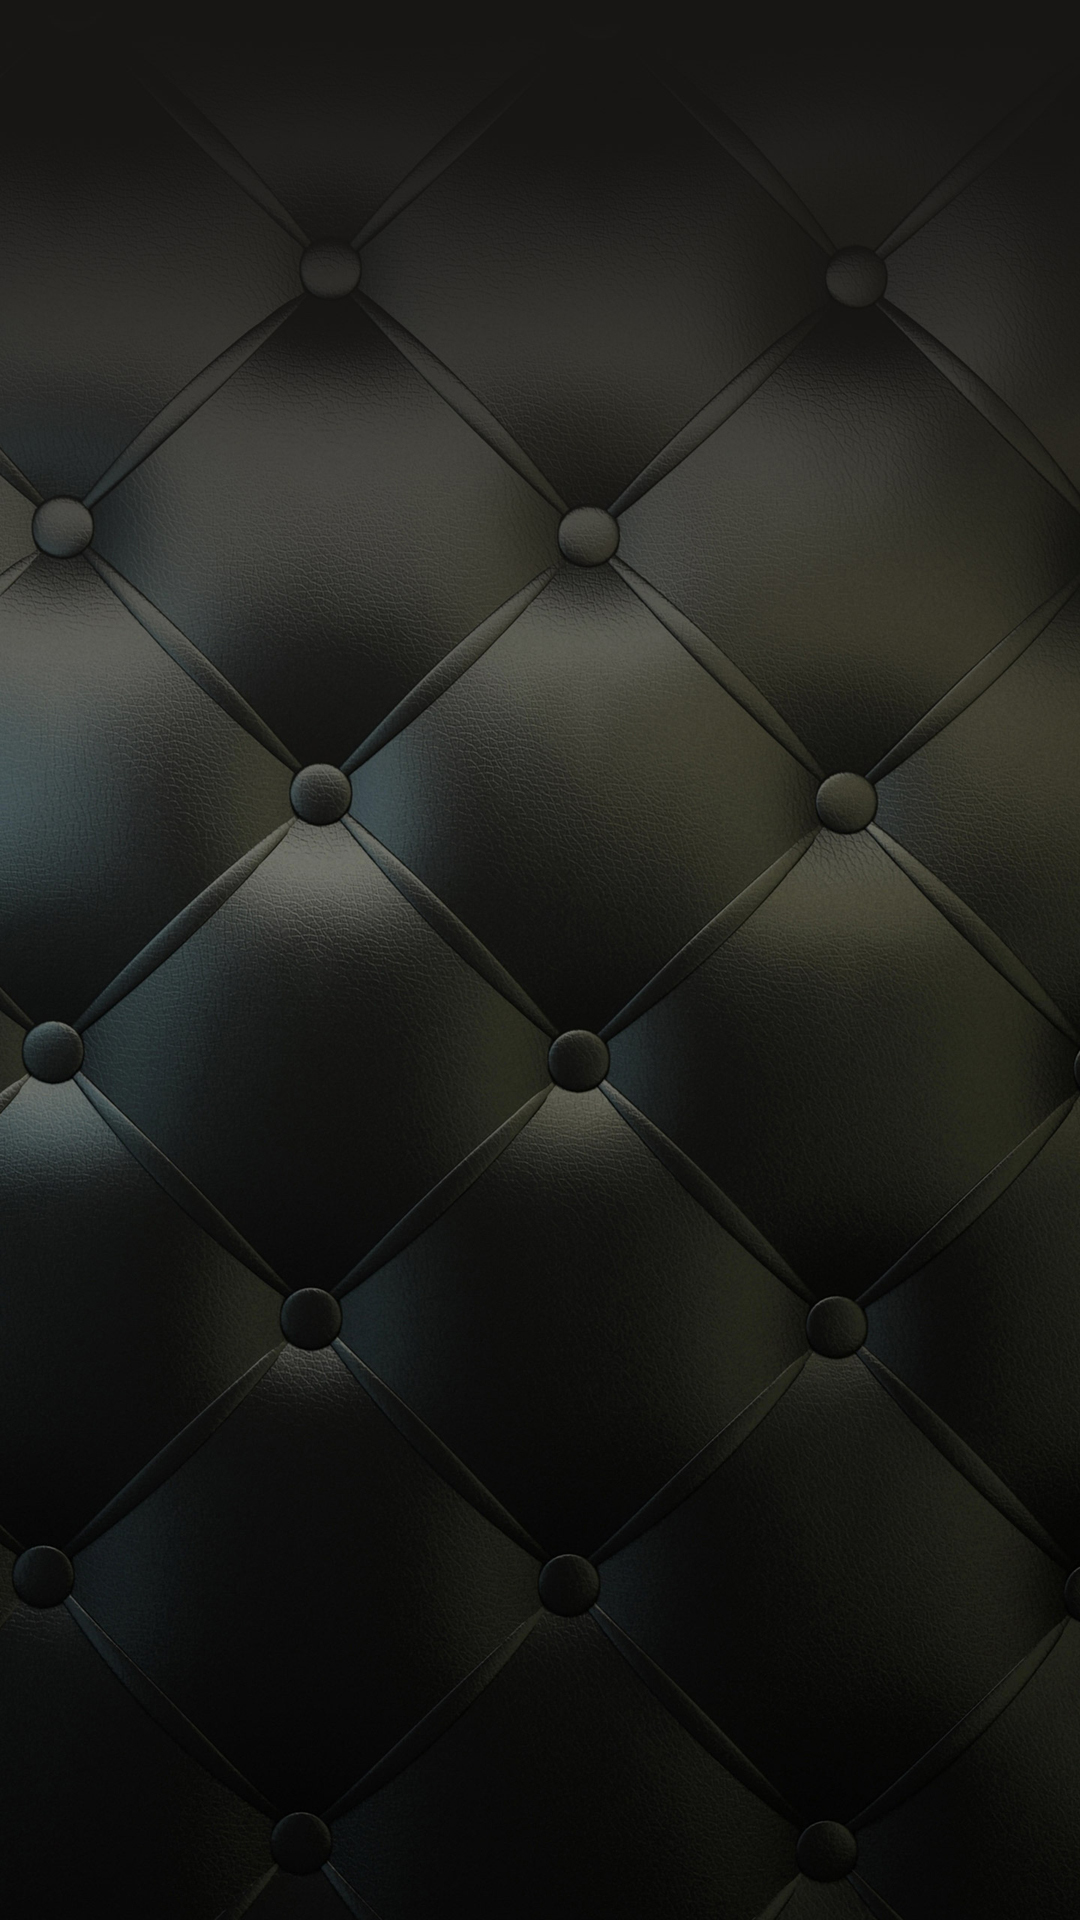 Black s4 wallpapers   android wallpapers download 1080x1920